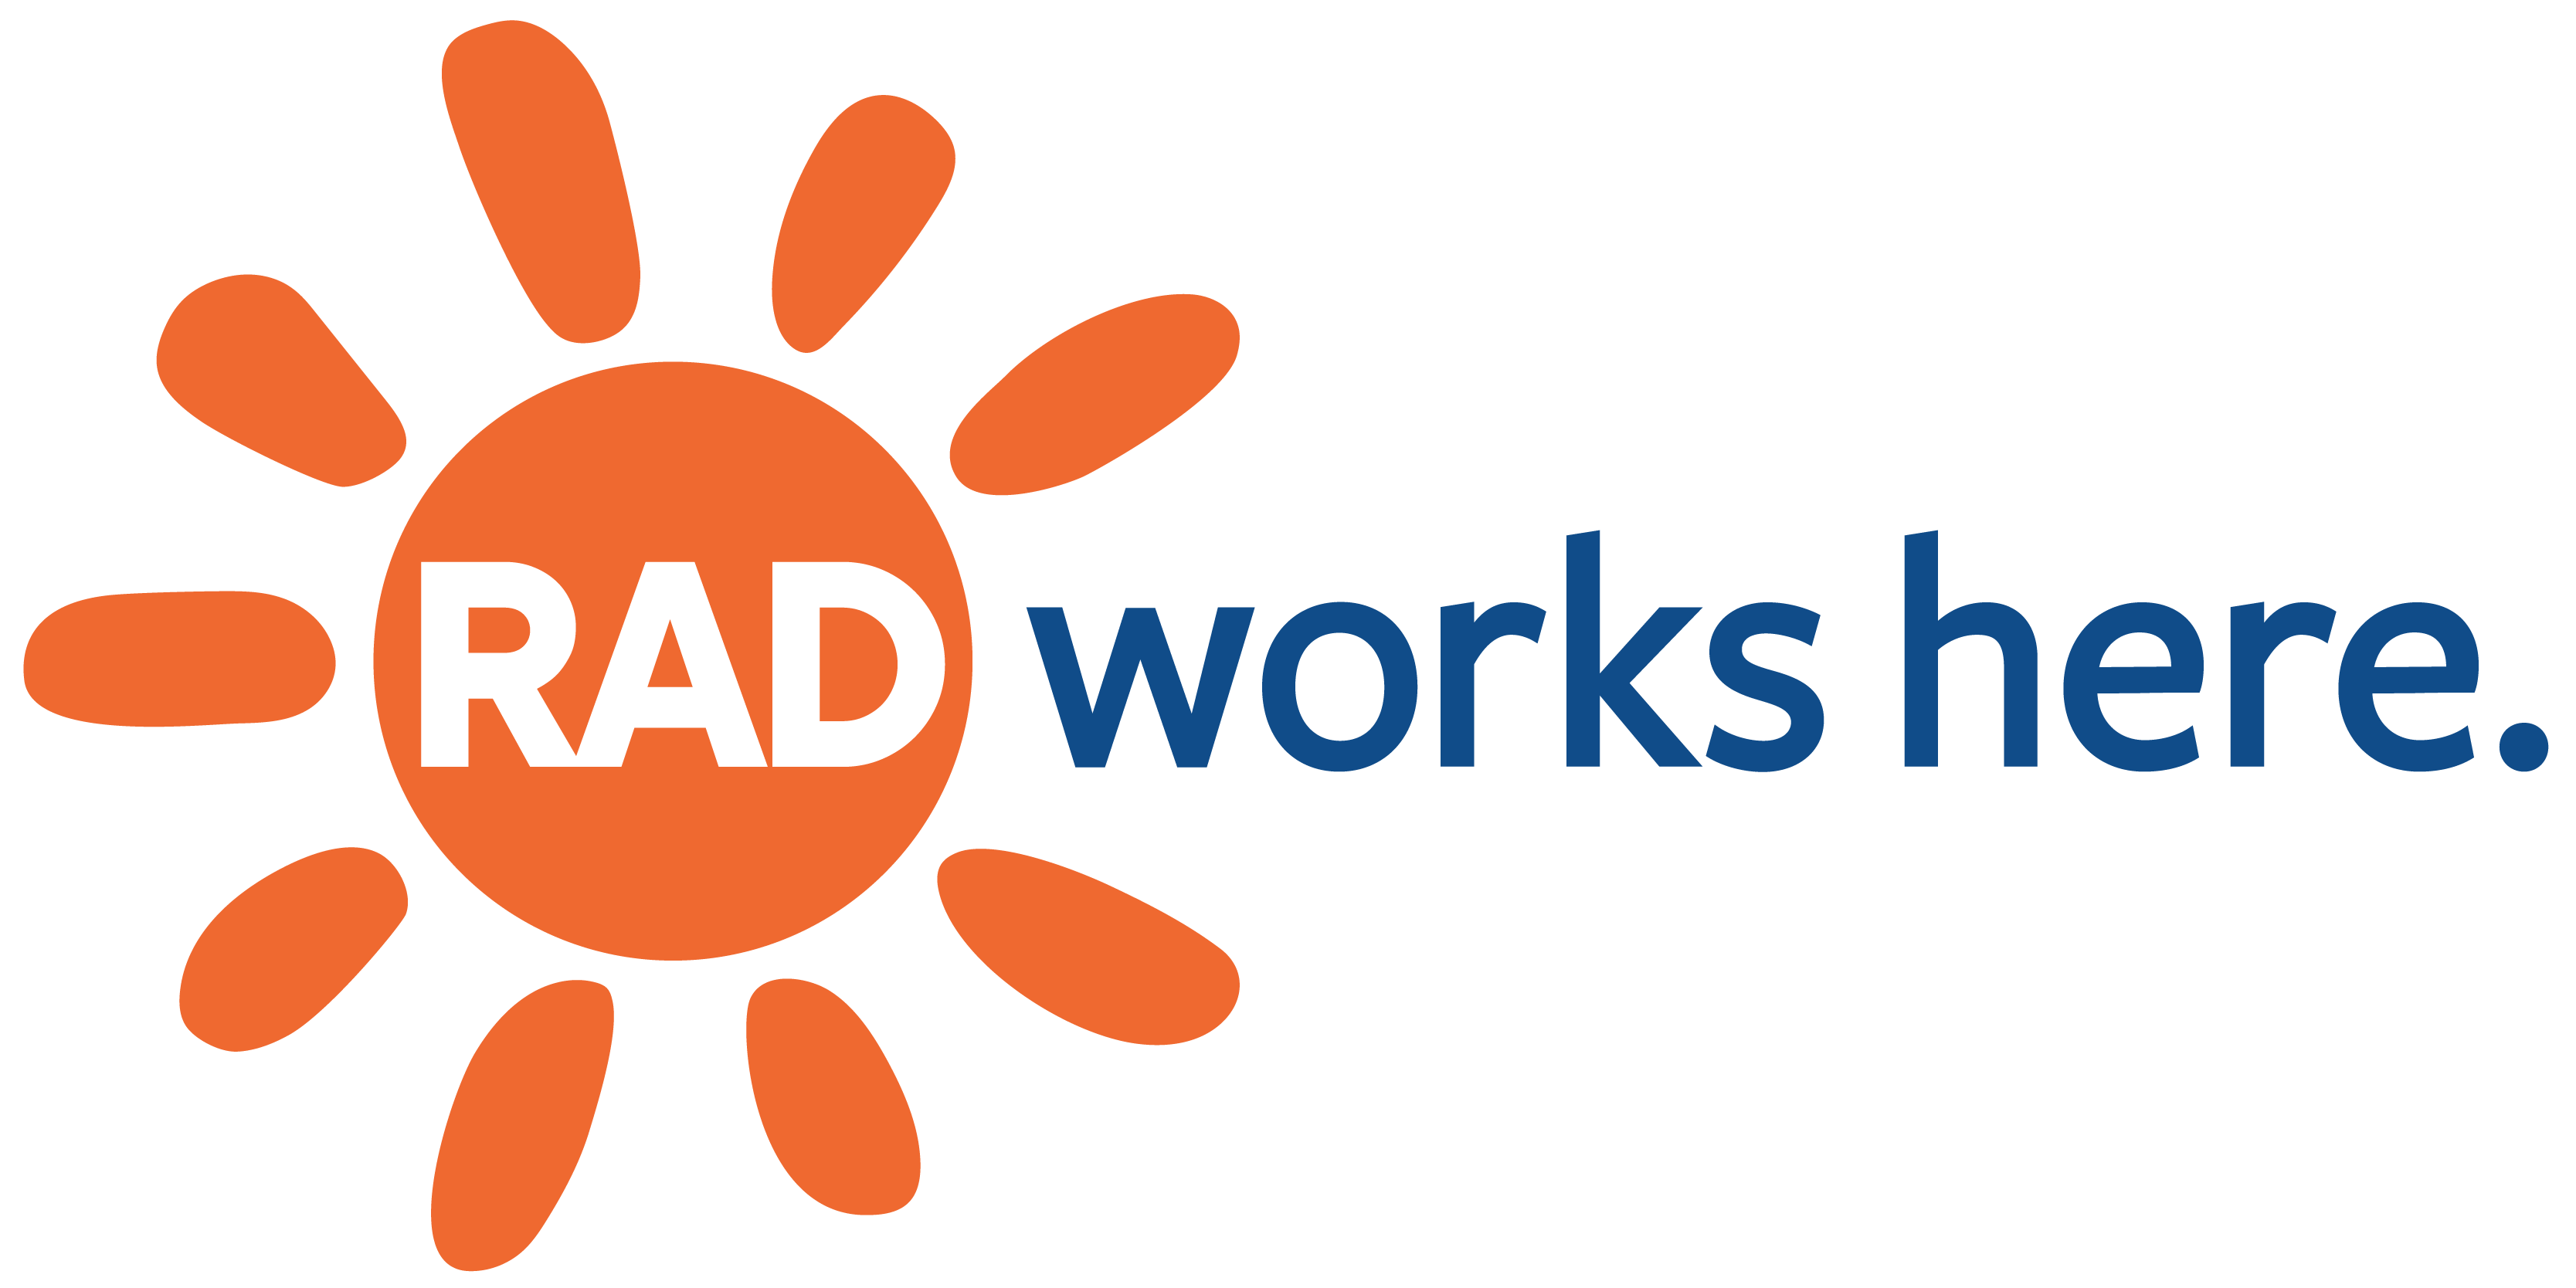 RAD works here logo